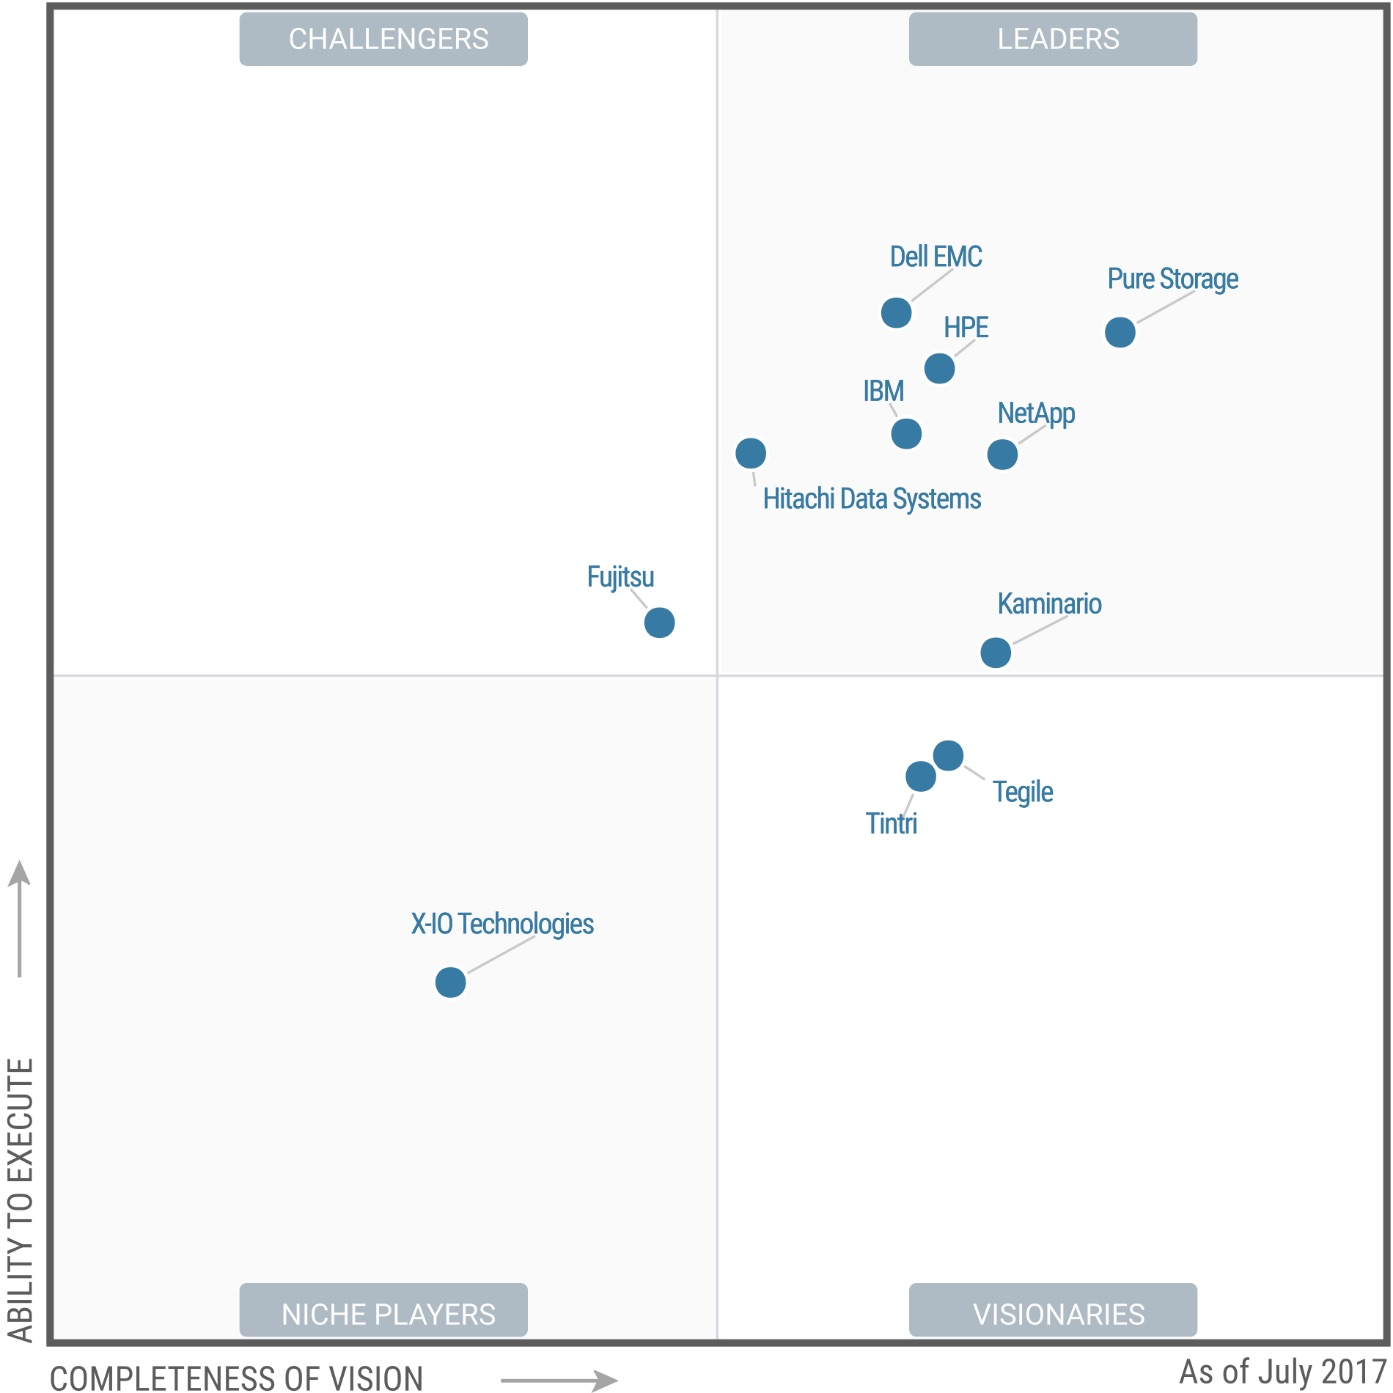 2017 Gartner Magic Quadrant For Ssas What Vision And